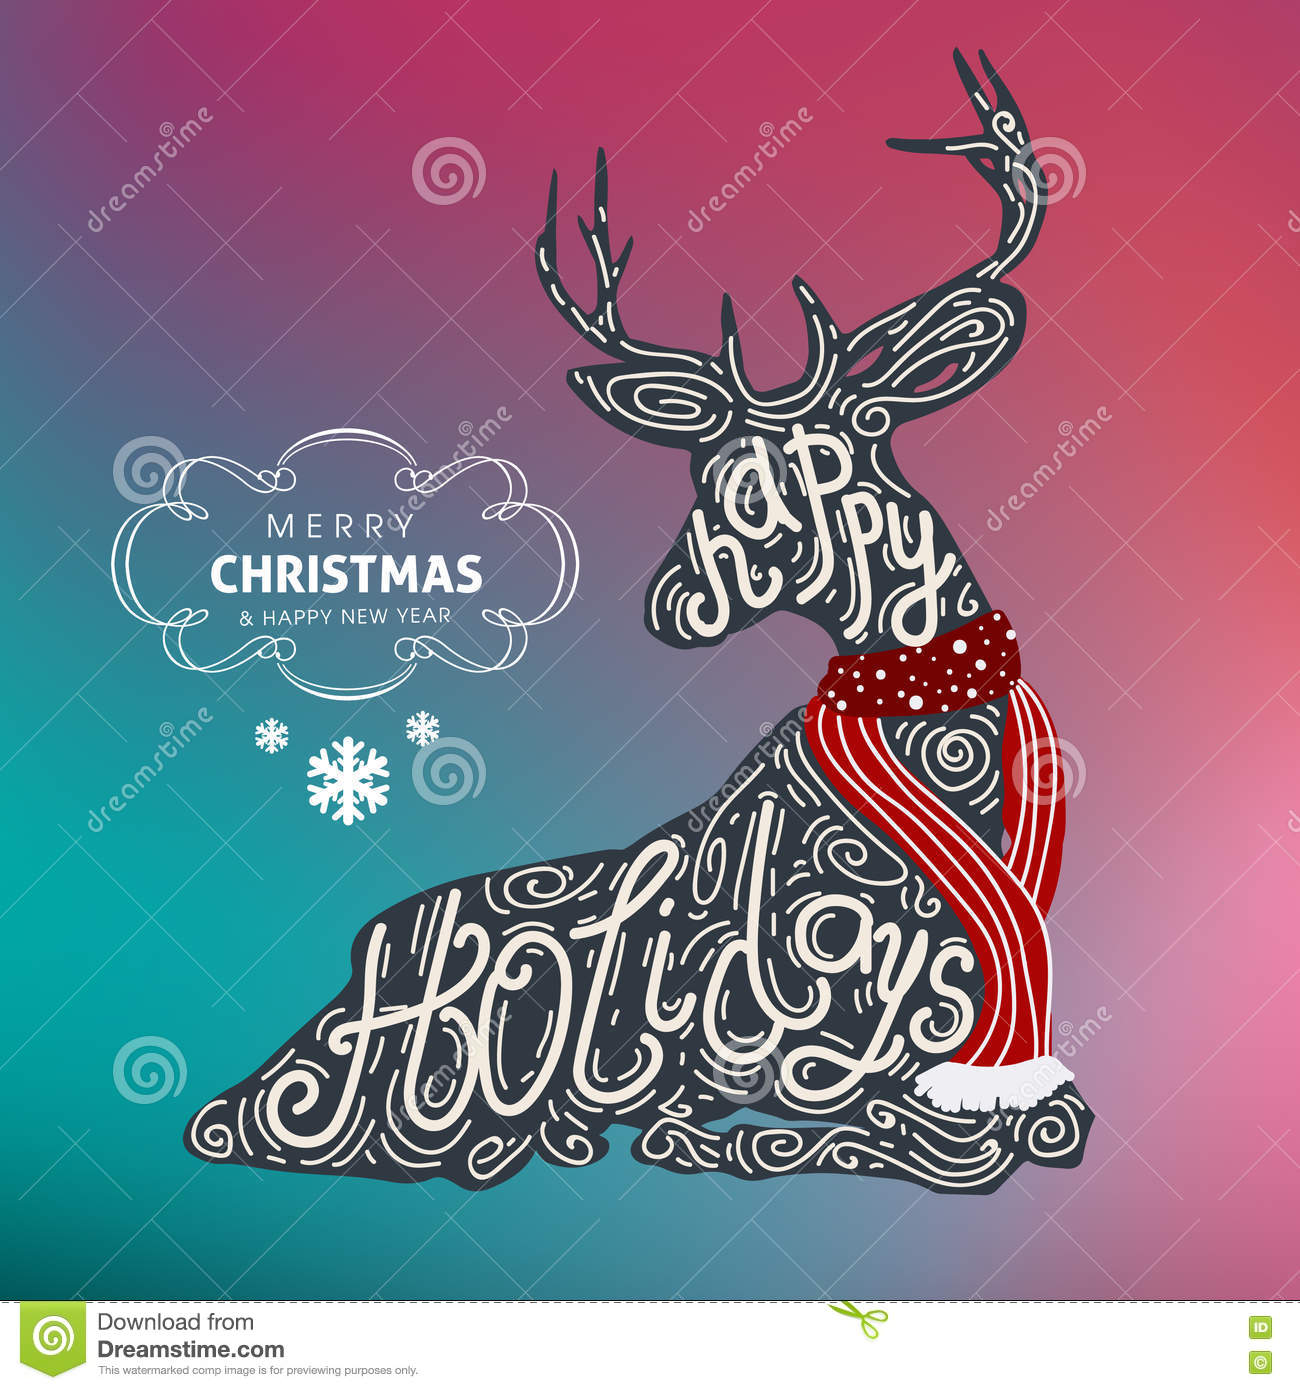 download happy holidays merry christmas and happy new year colorful vector design 2017 stock vector